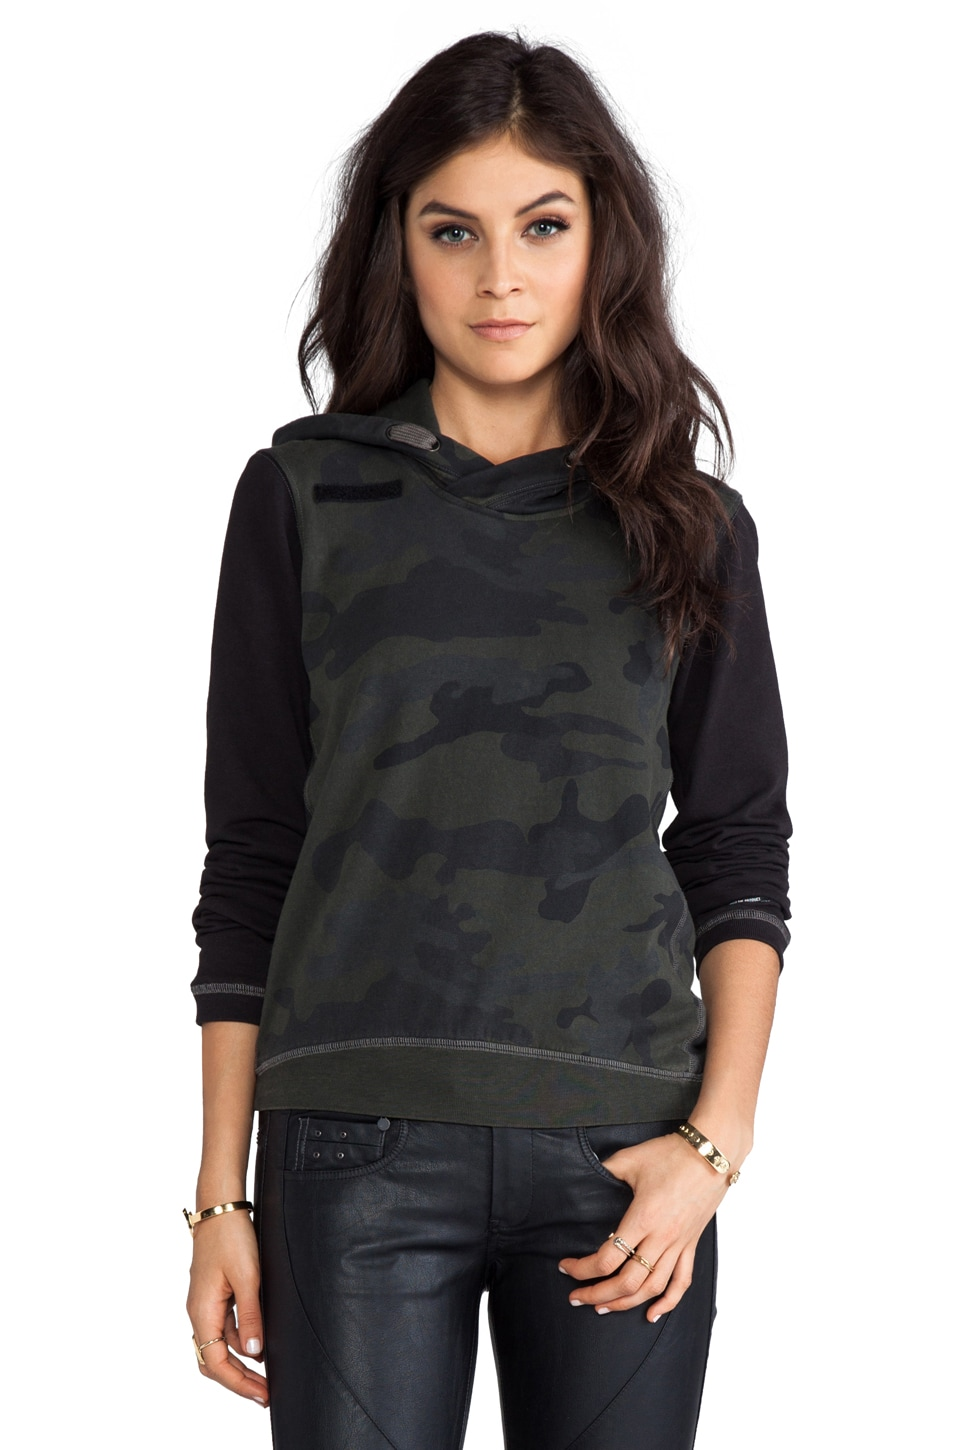 G-Star Field Hooded Sweatshirt in Arsenic